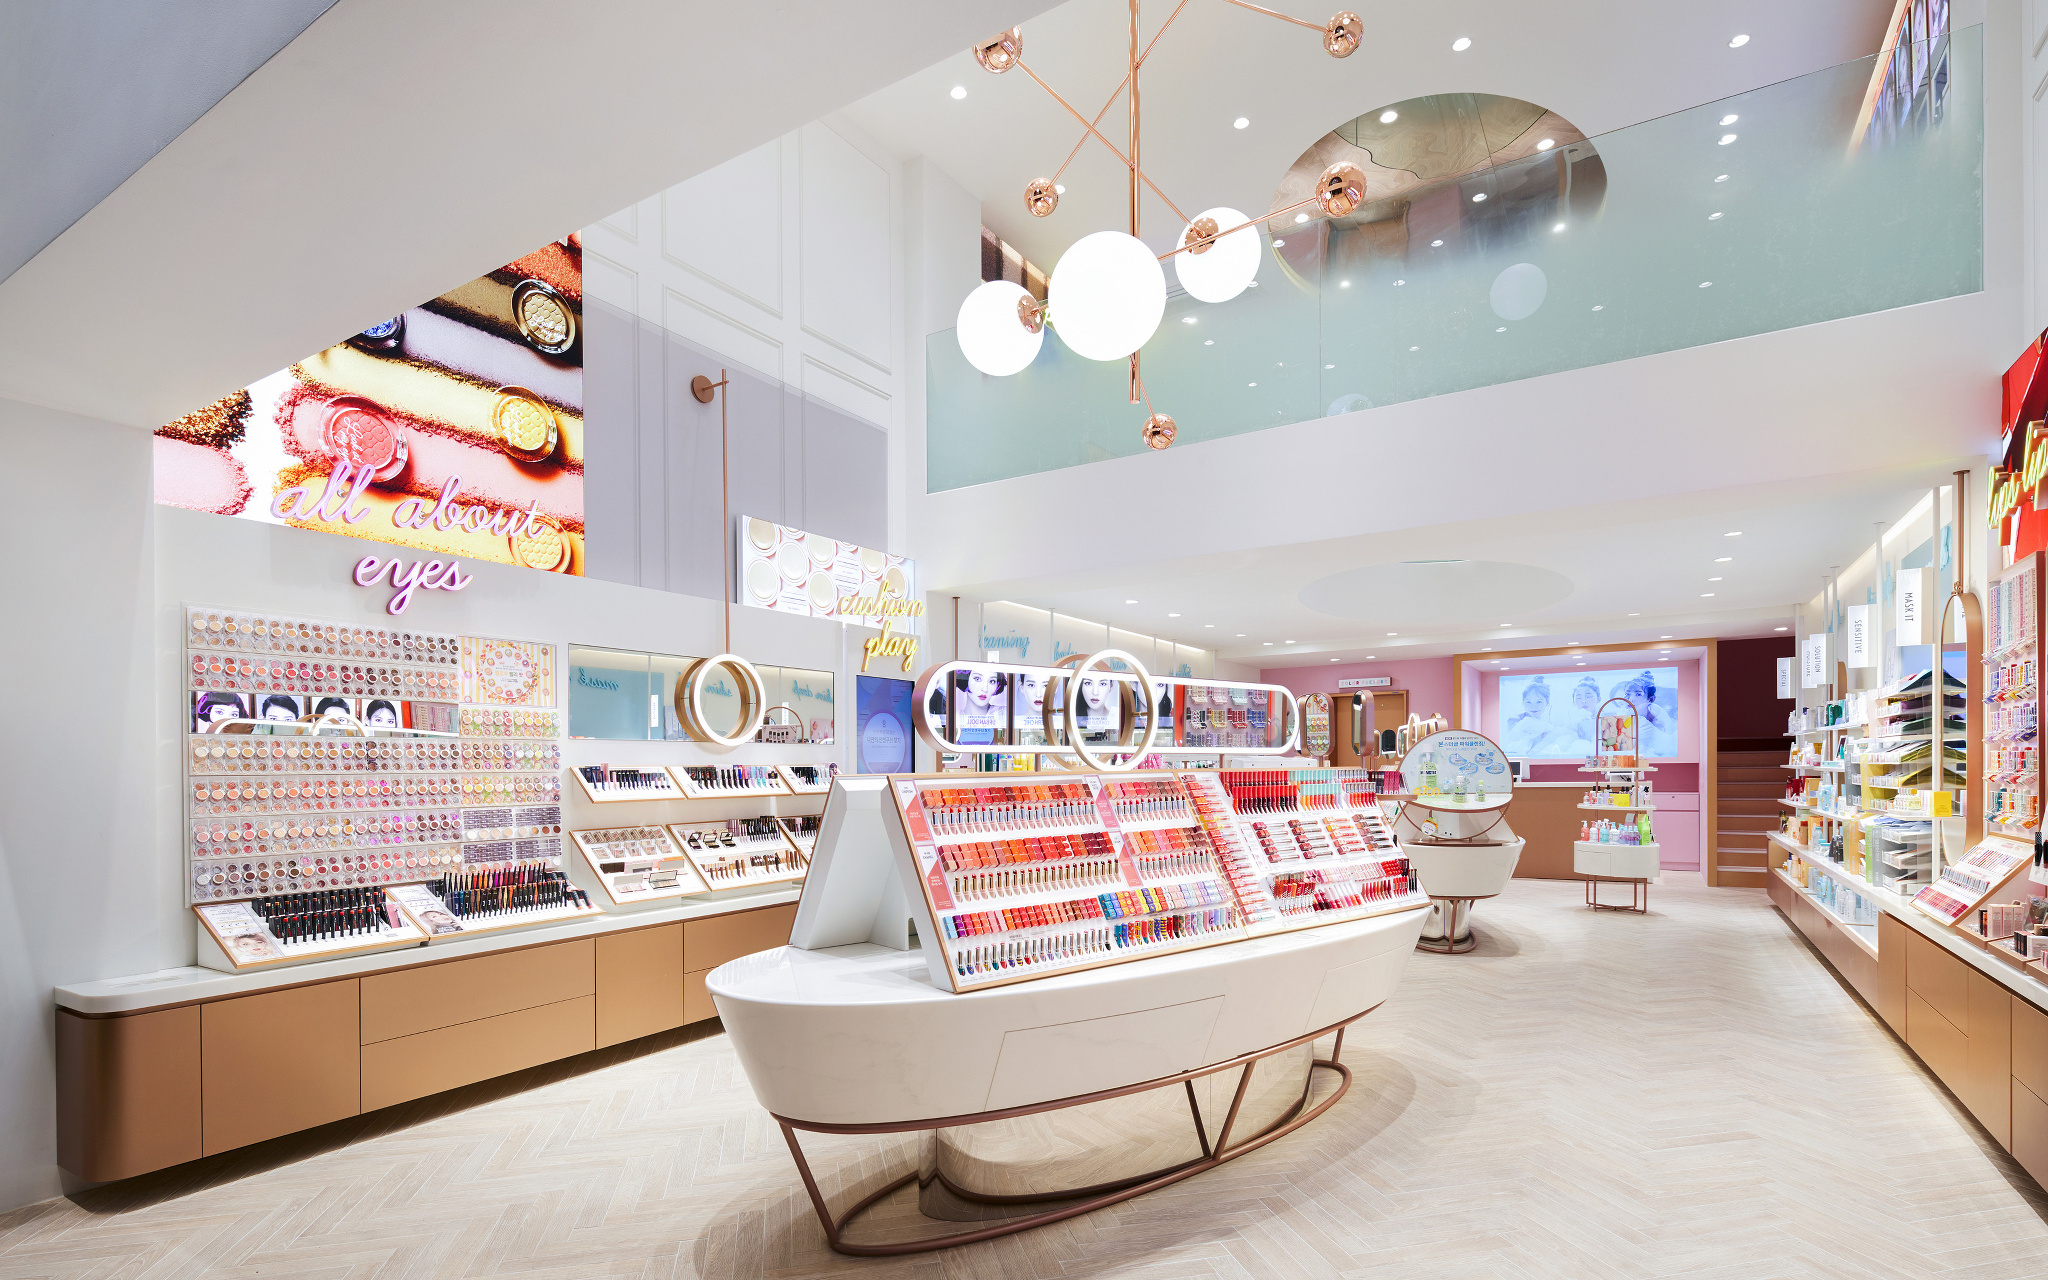 Etude House Seoul South Korea Echochamber